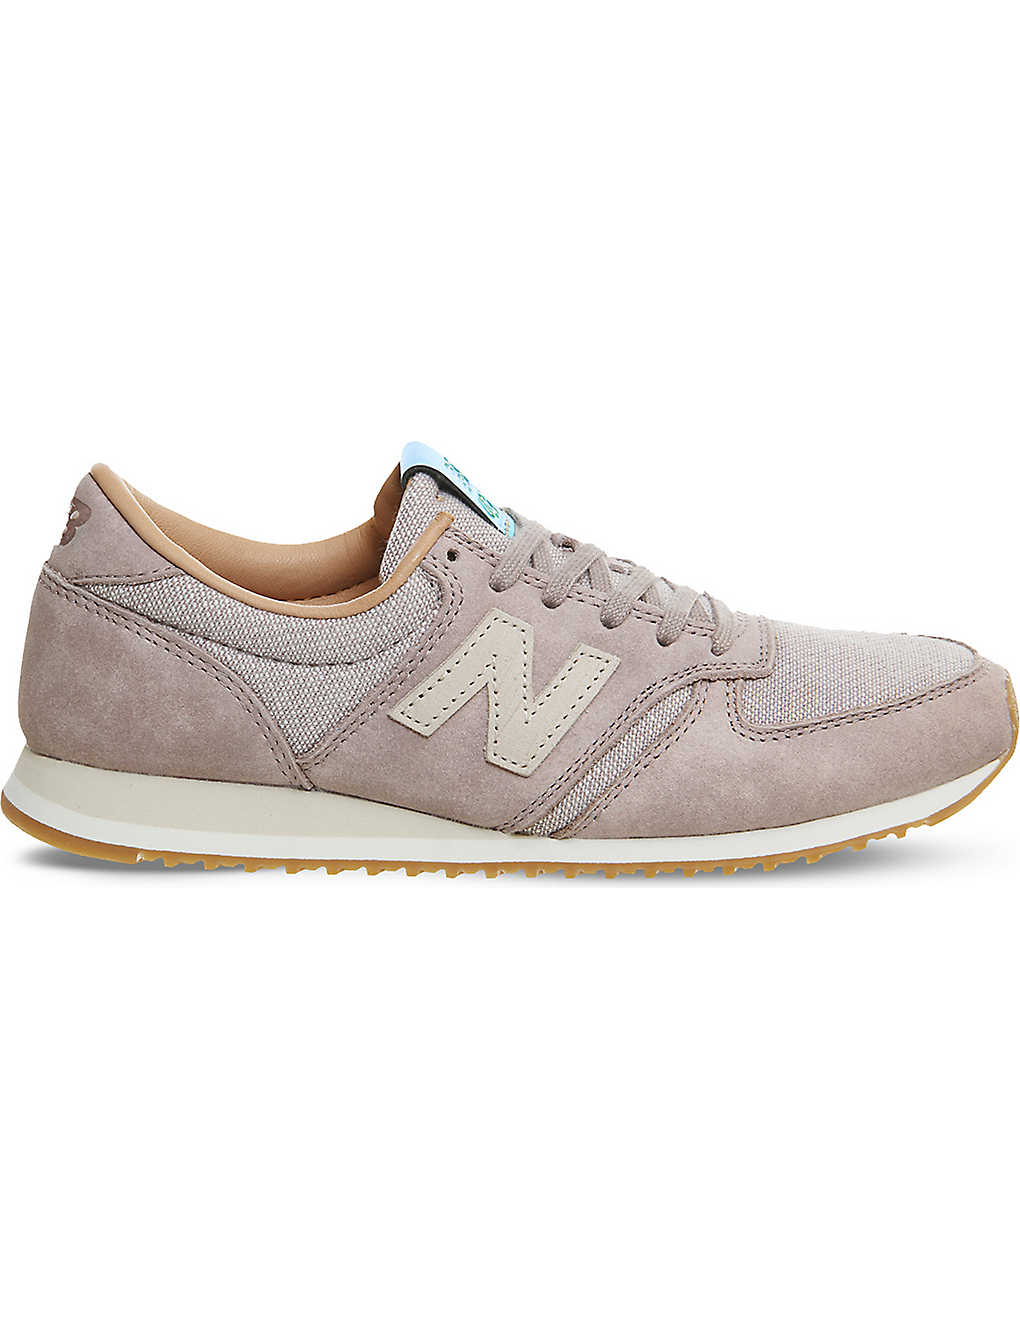 183bcbc0d8f58 NEW BALANCE - 420 low-top suede and leather trainers | Selfridges.com